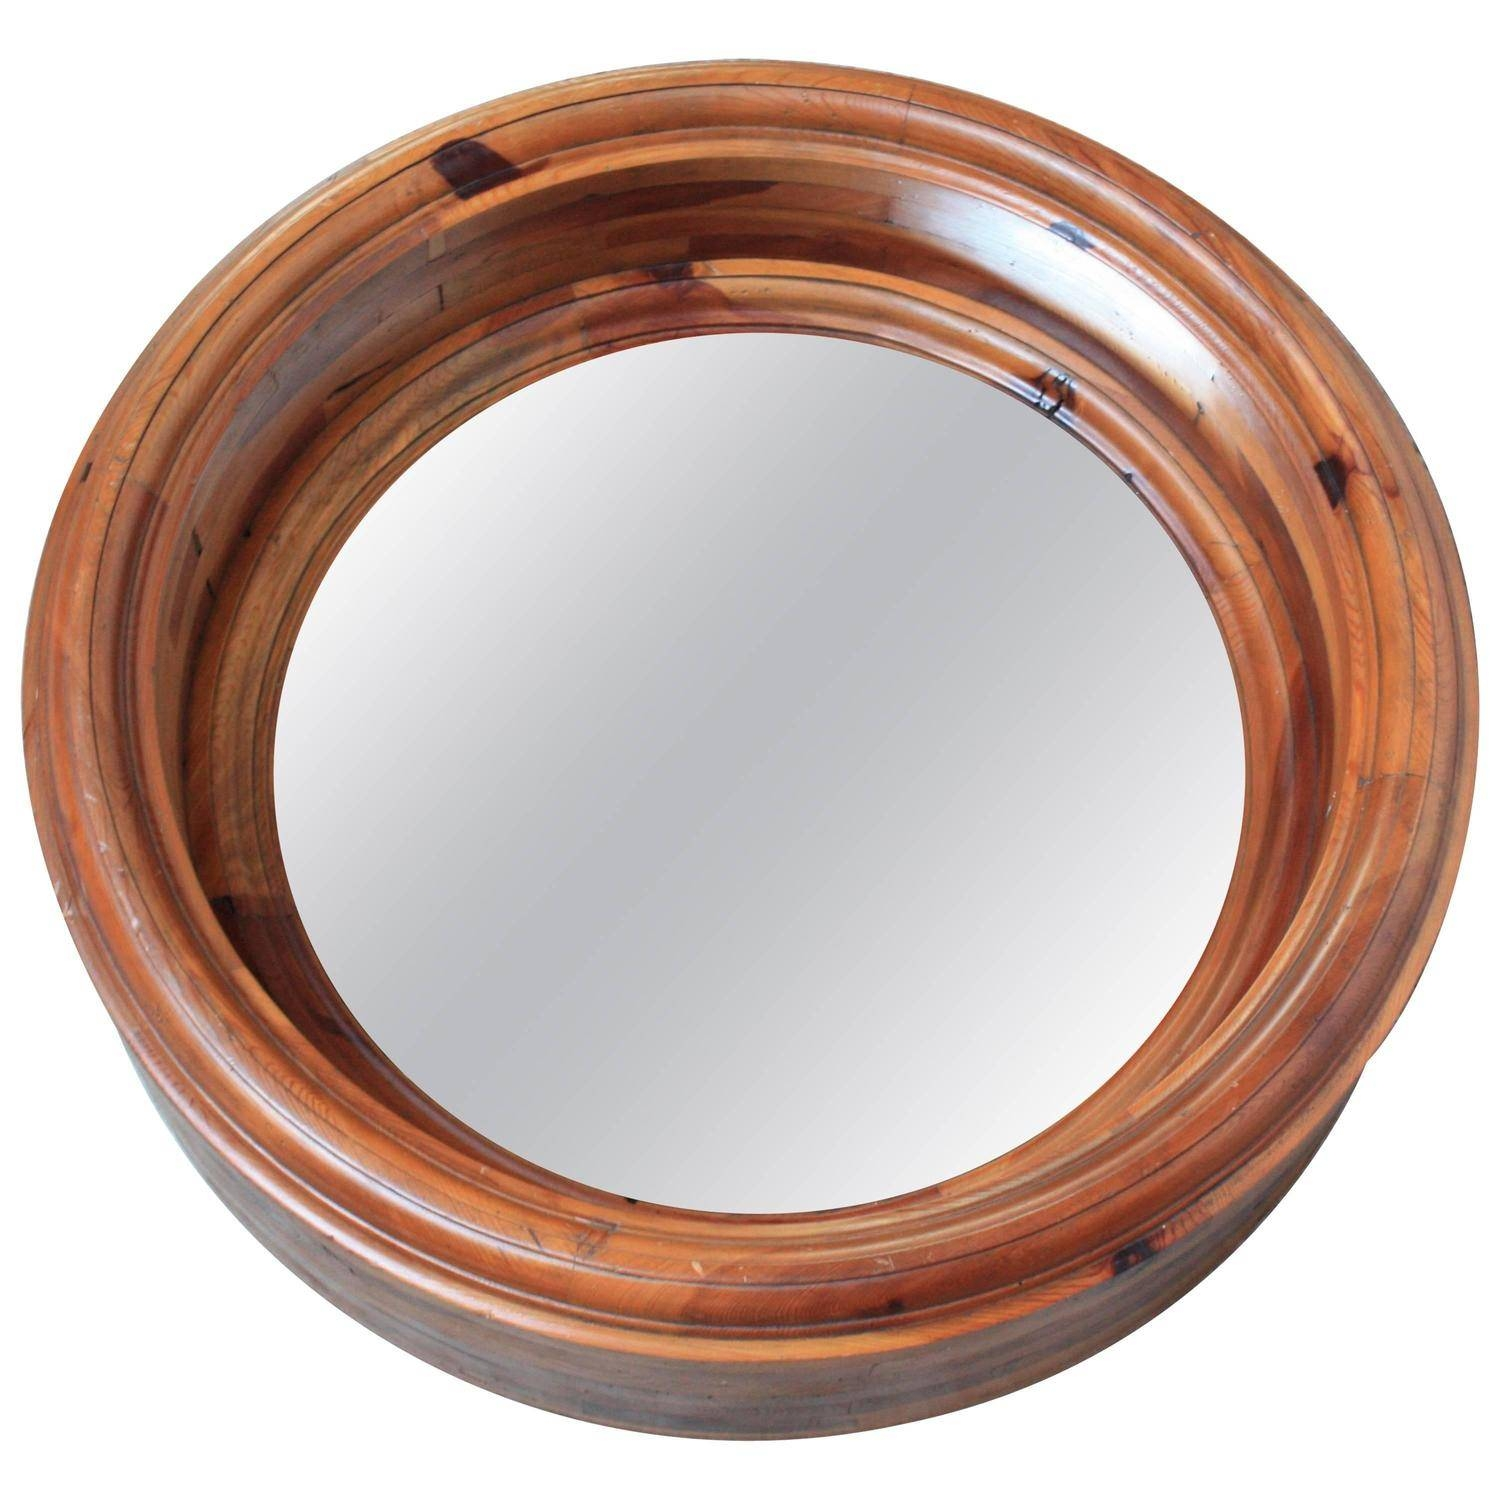 Large Wooden Porthole Mirrorralph Lauren For Sale At 1stdibs Pertaining To Round Porthole Mirrors (View 15 of 15)